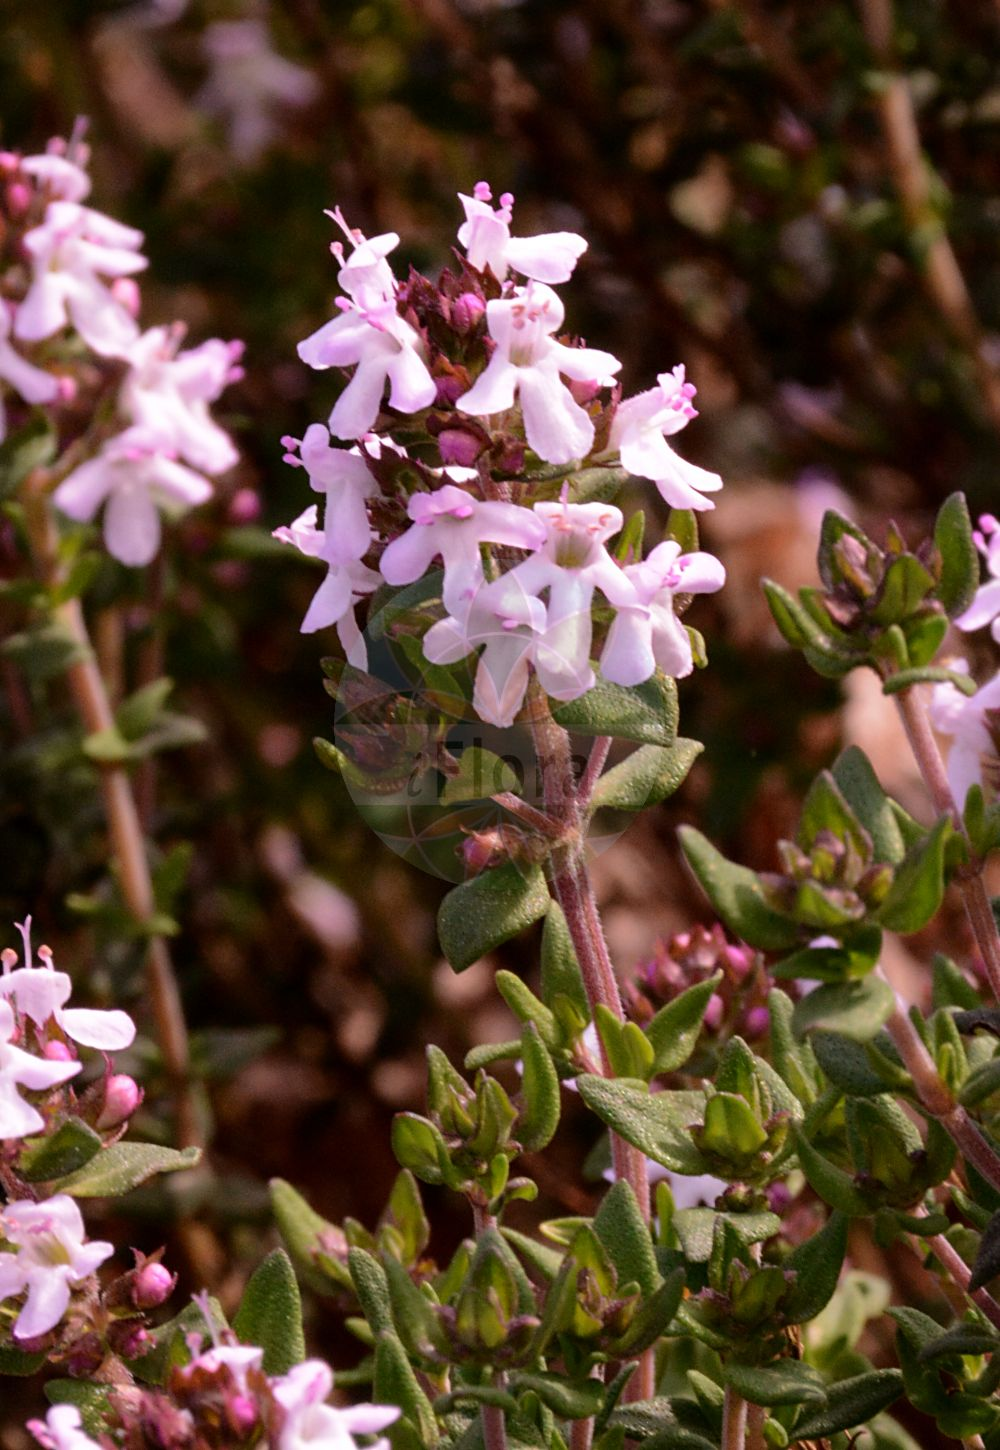 Foto von Thymus vulgaris (Echter Thymian - Garden Thyme). Das Foto wurde in Bremen, Deutschland aufgenommen. ---- Photo of Thymus vulgaris (Echter Thymian - Garden Thyme).The picture was taken in Bremen, Germany.(Thymus vulgaris,Echter Thymian,Garden Thyme,Origanum thymus,,Gewuerz-Thymian,Thyme,Thymus,Thymian,Thyme,Lamiaceae,Lippenbluetengewaechse;Lippenbluetler,Nettle family)